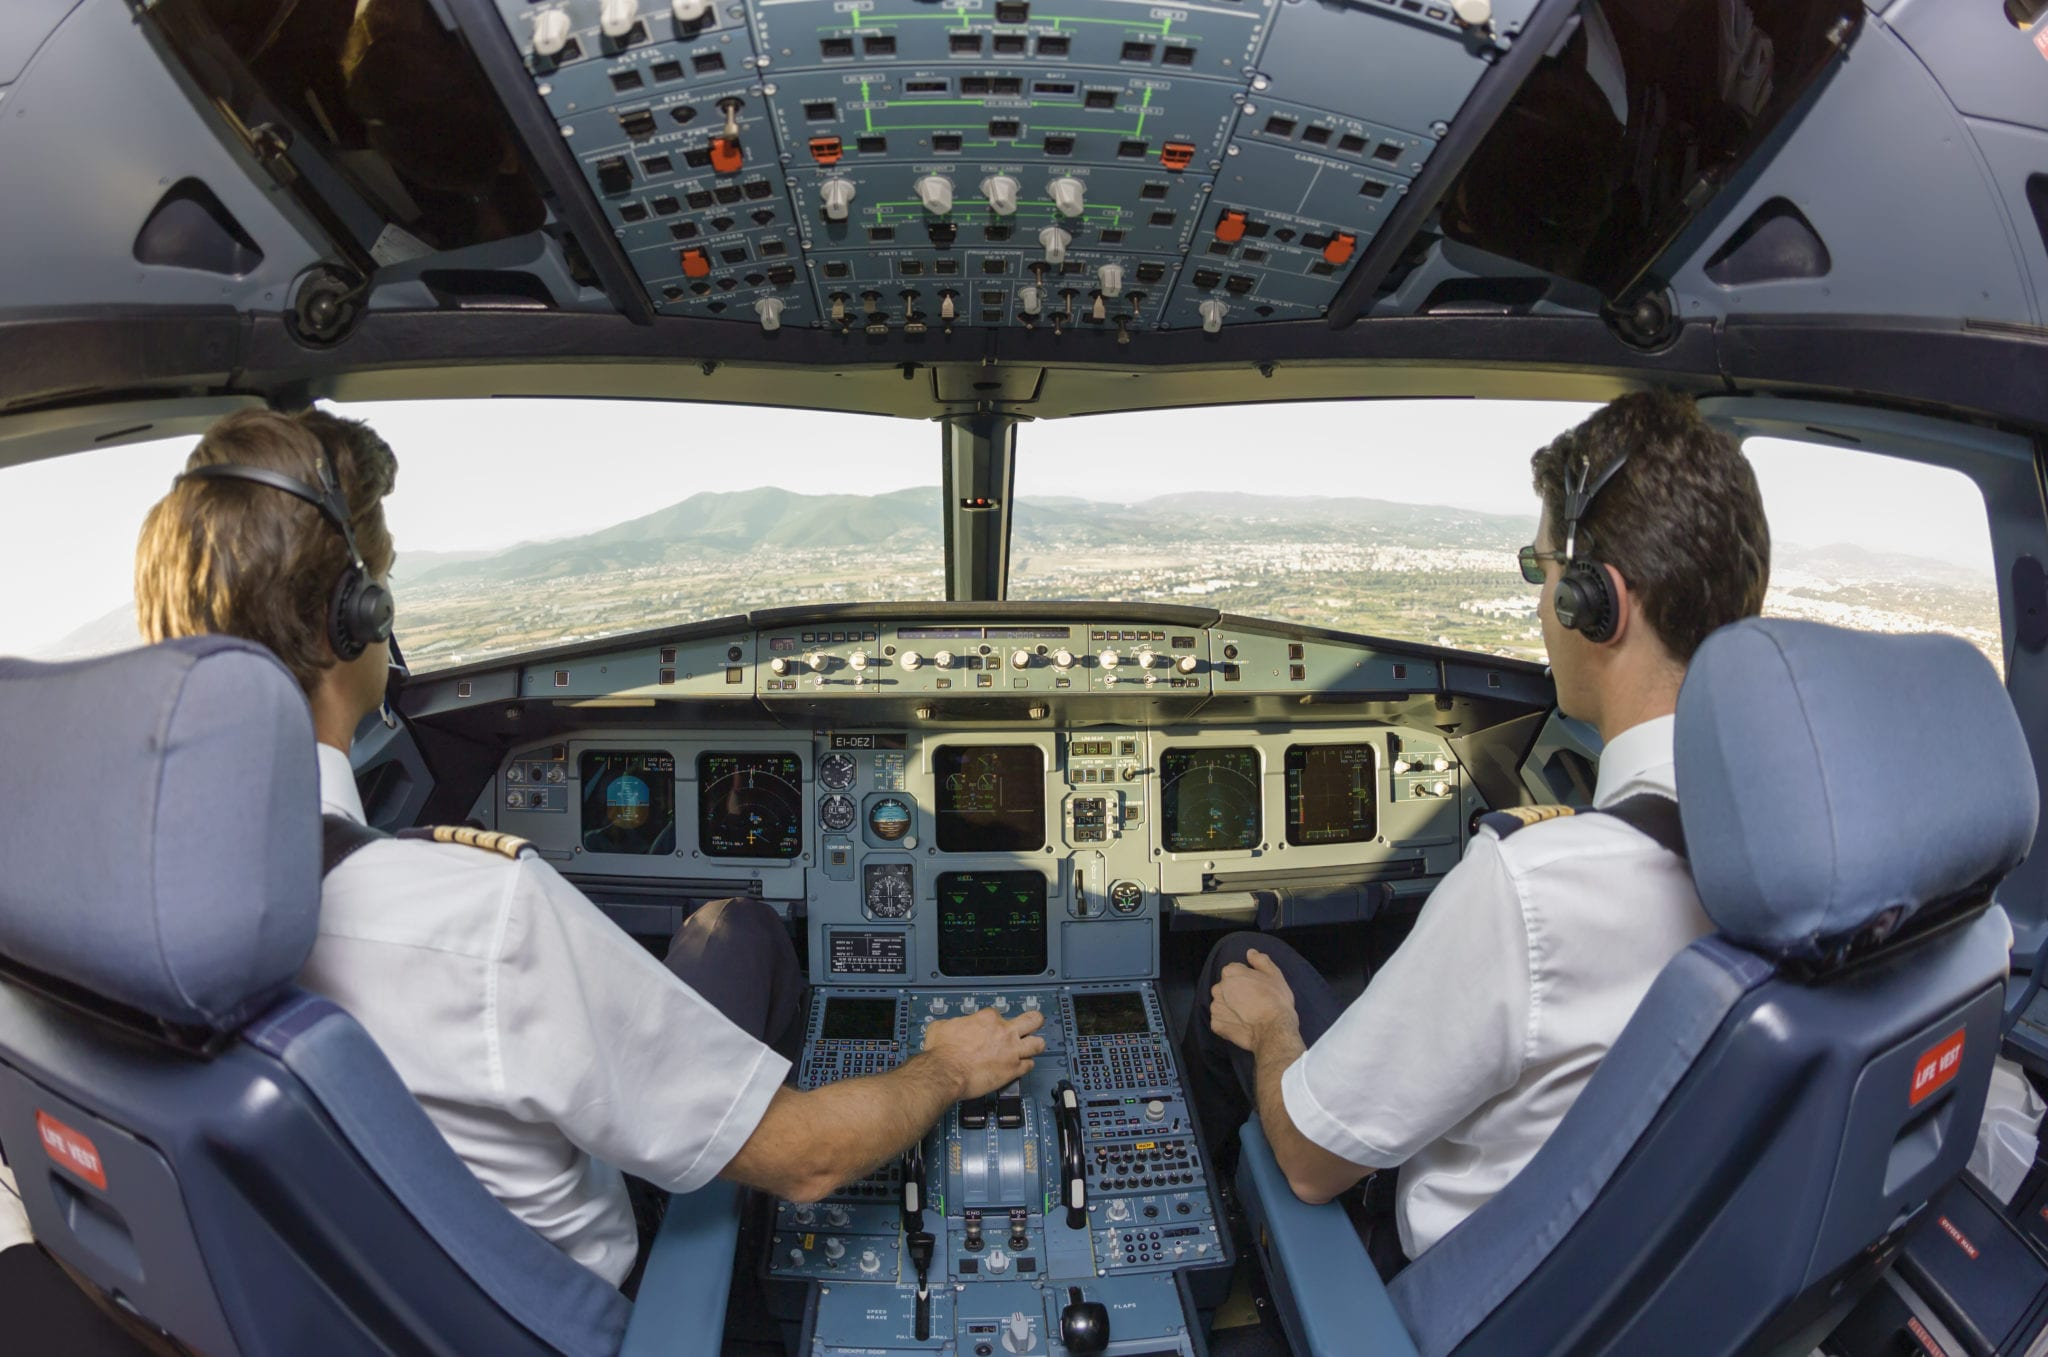 Canadian flight crews cannot light up or consume any cannabis for at least 28 days before they go on duty, according to new national aviation rules in force.